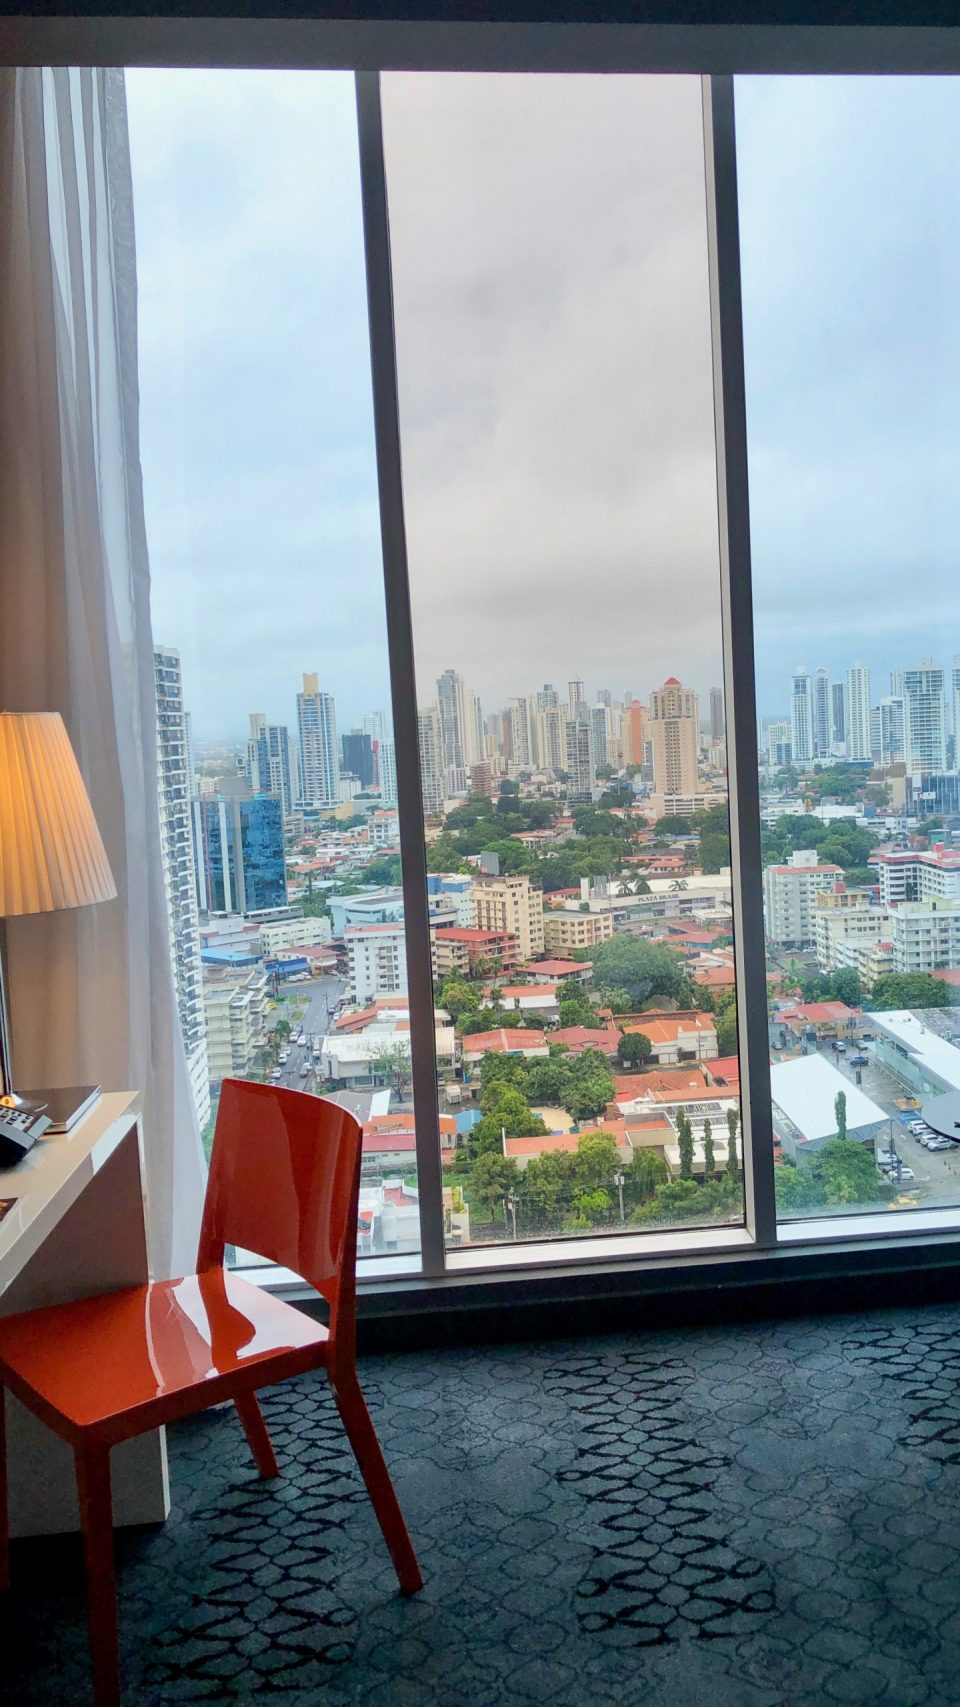 City as a Family, Panama City as a Family, Sortis Hotel and Casino, Panama, Marriott Panama, Marriott Hotels